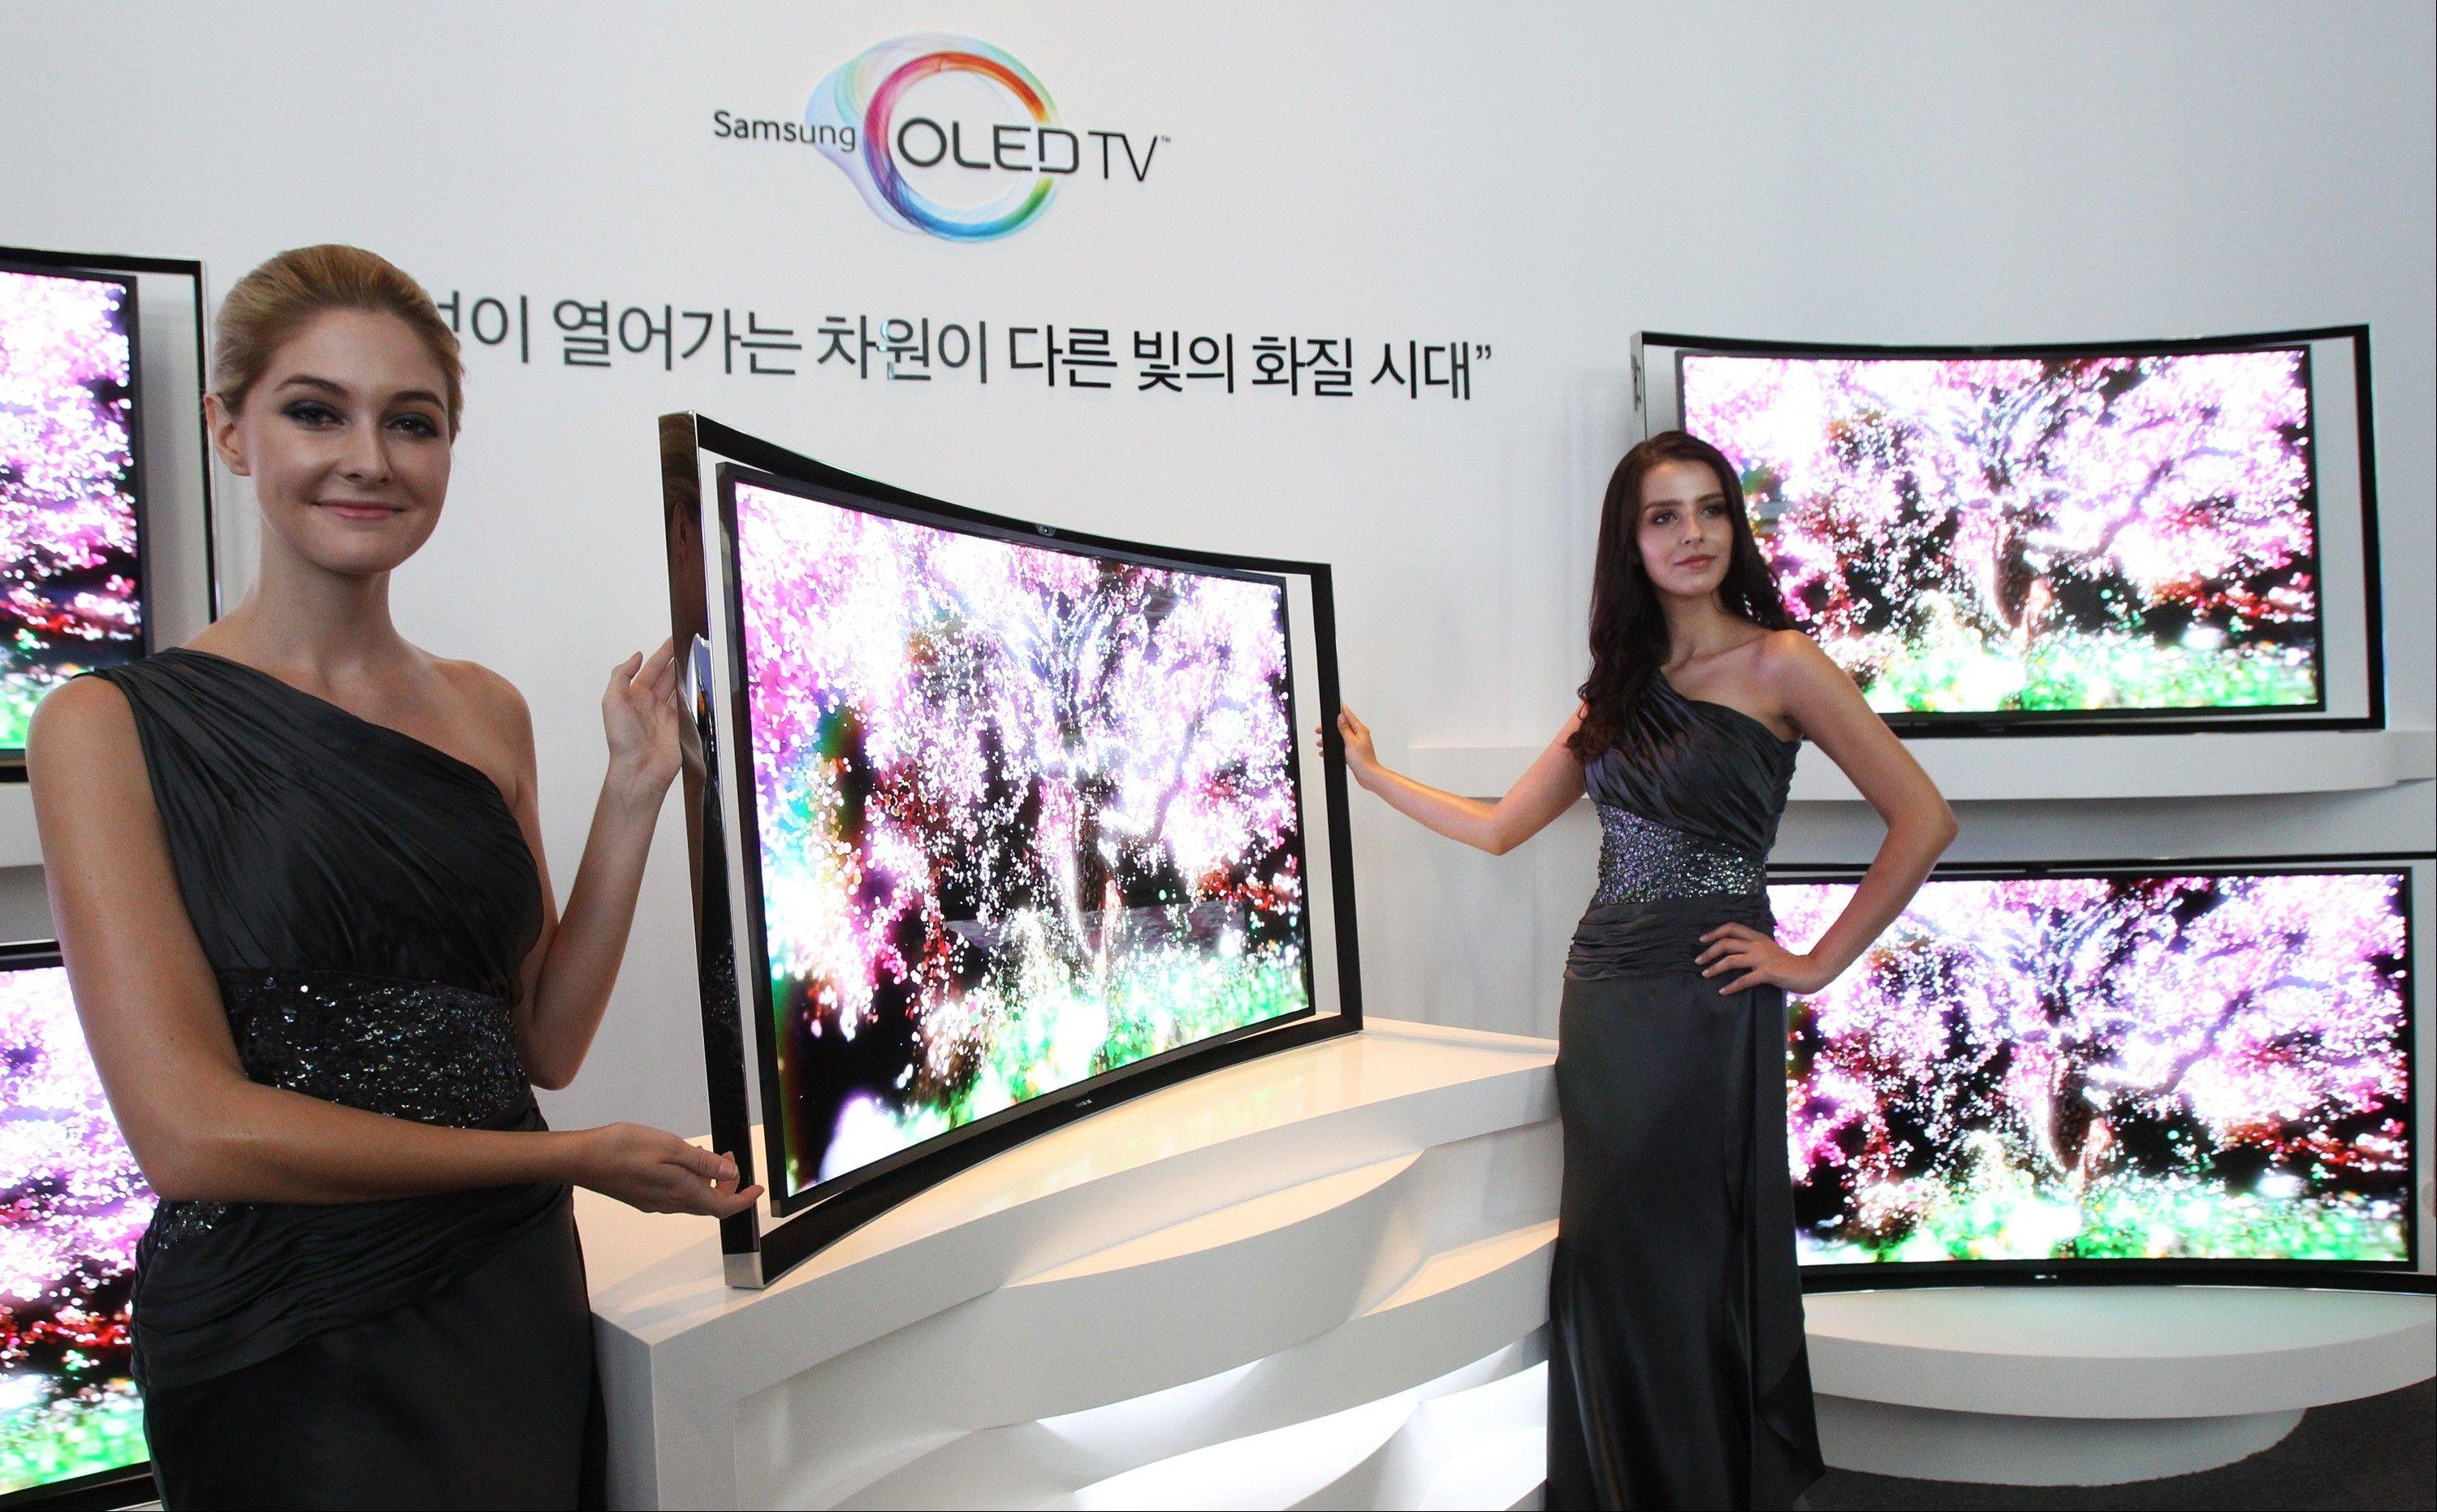 Models pose Thursday with a Samsung Electronics Co.�s 55-inch curved OLED TV during a news conference at its headquarters in Seoul, South Korea. After delays, Samsung rolled out Thursday the curved TV that uses an advanced display called OLED. The 55-inch TV will sell for $13,000 in South Korea, more than five times the cost of LCD televisions of the same size.